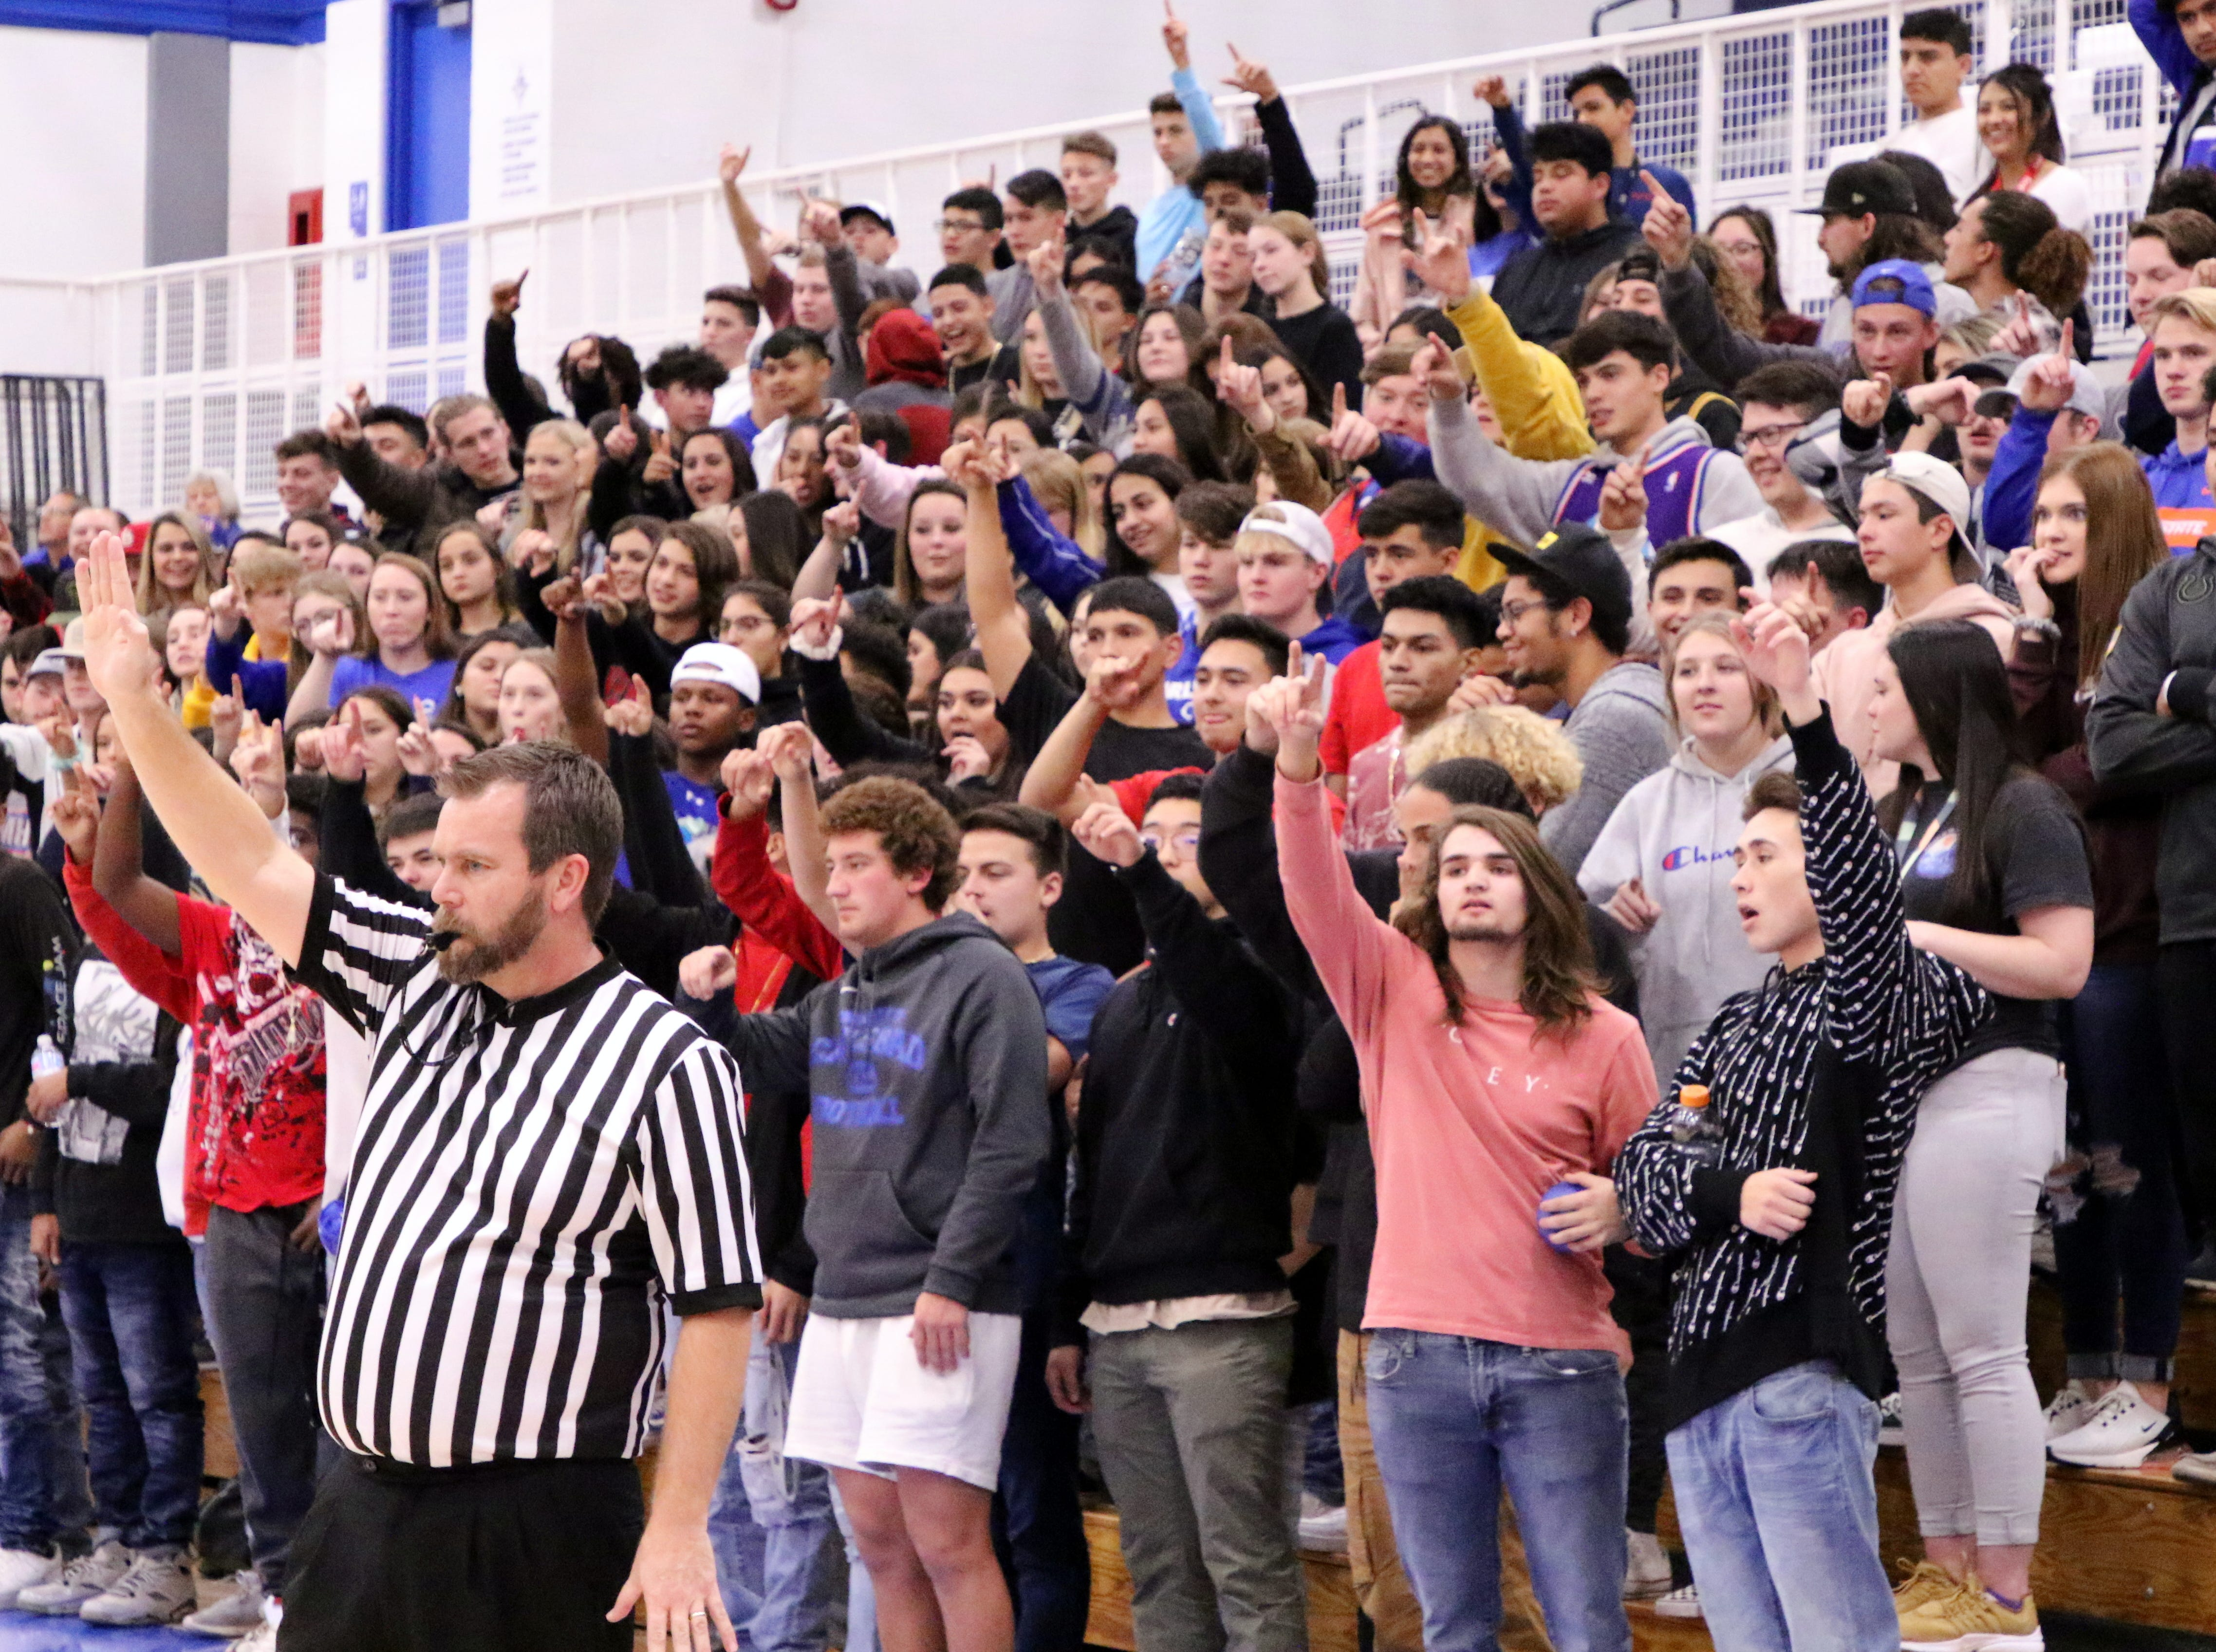 The Carlsbad crowd reacts to a three-point shot in the first half of Friday's game against Gadsden.